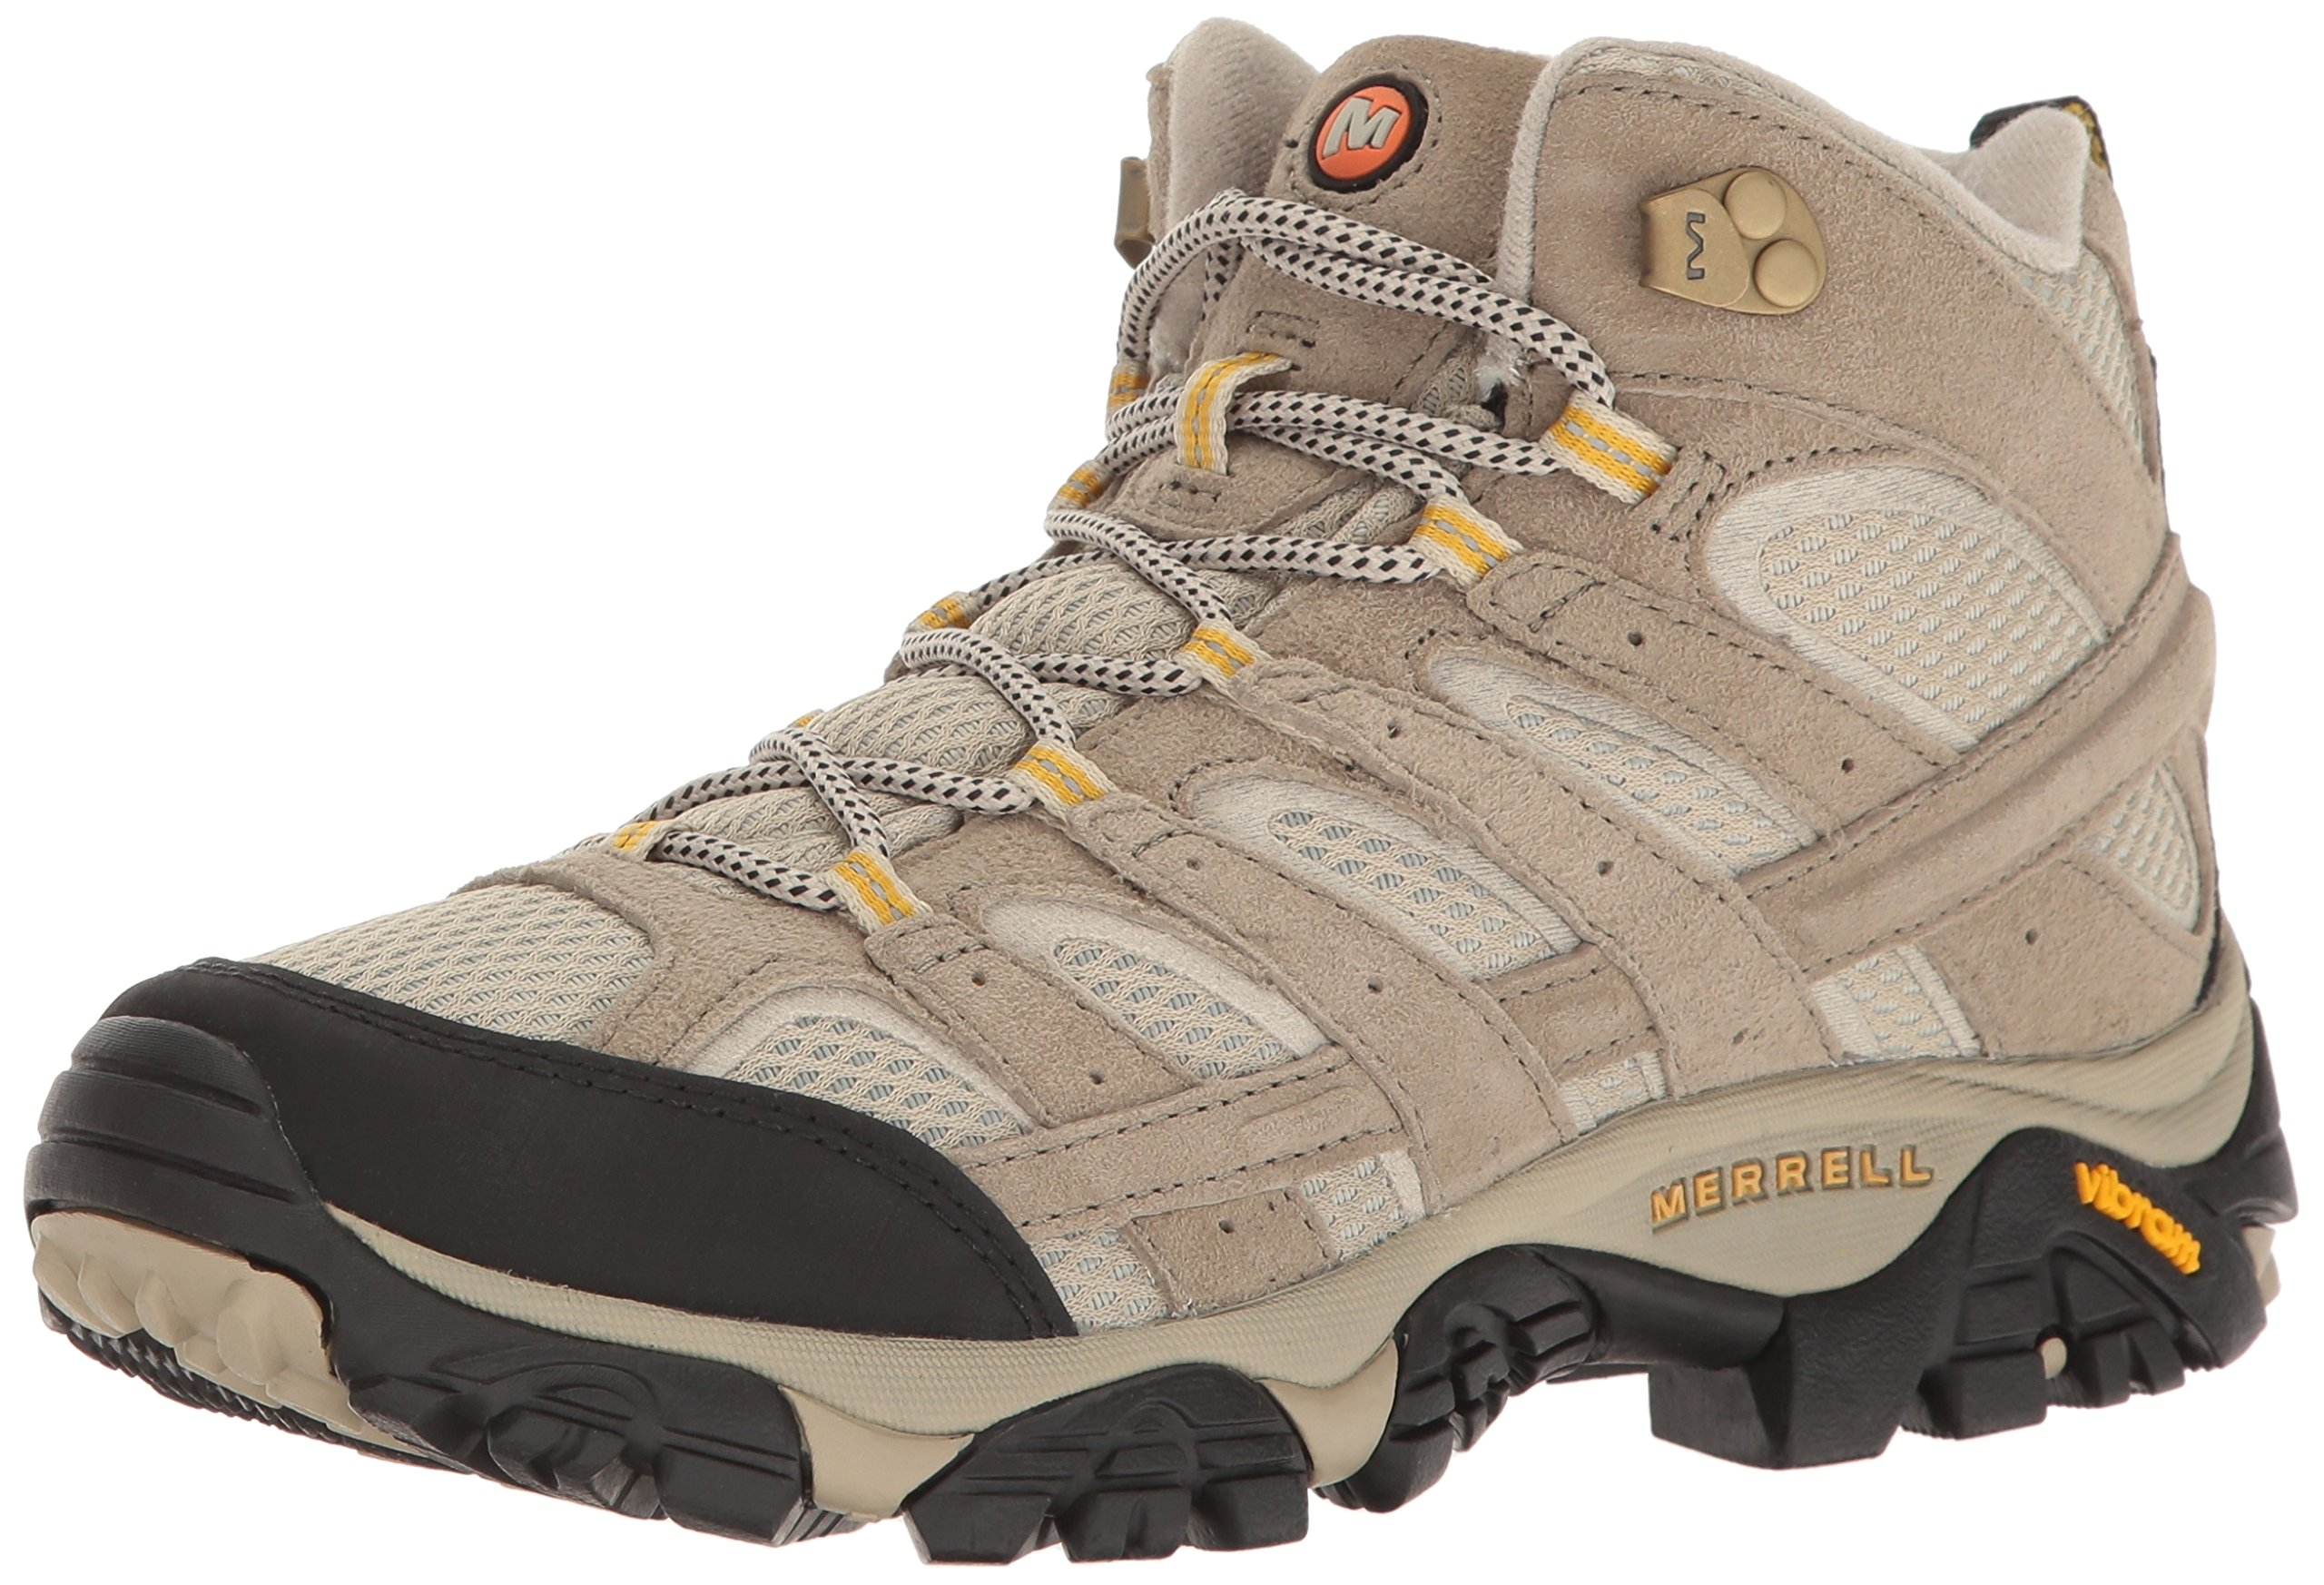 Merrell Women's Moab 2 Vent Mid, Taupe, 6.5 M by Merrell